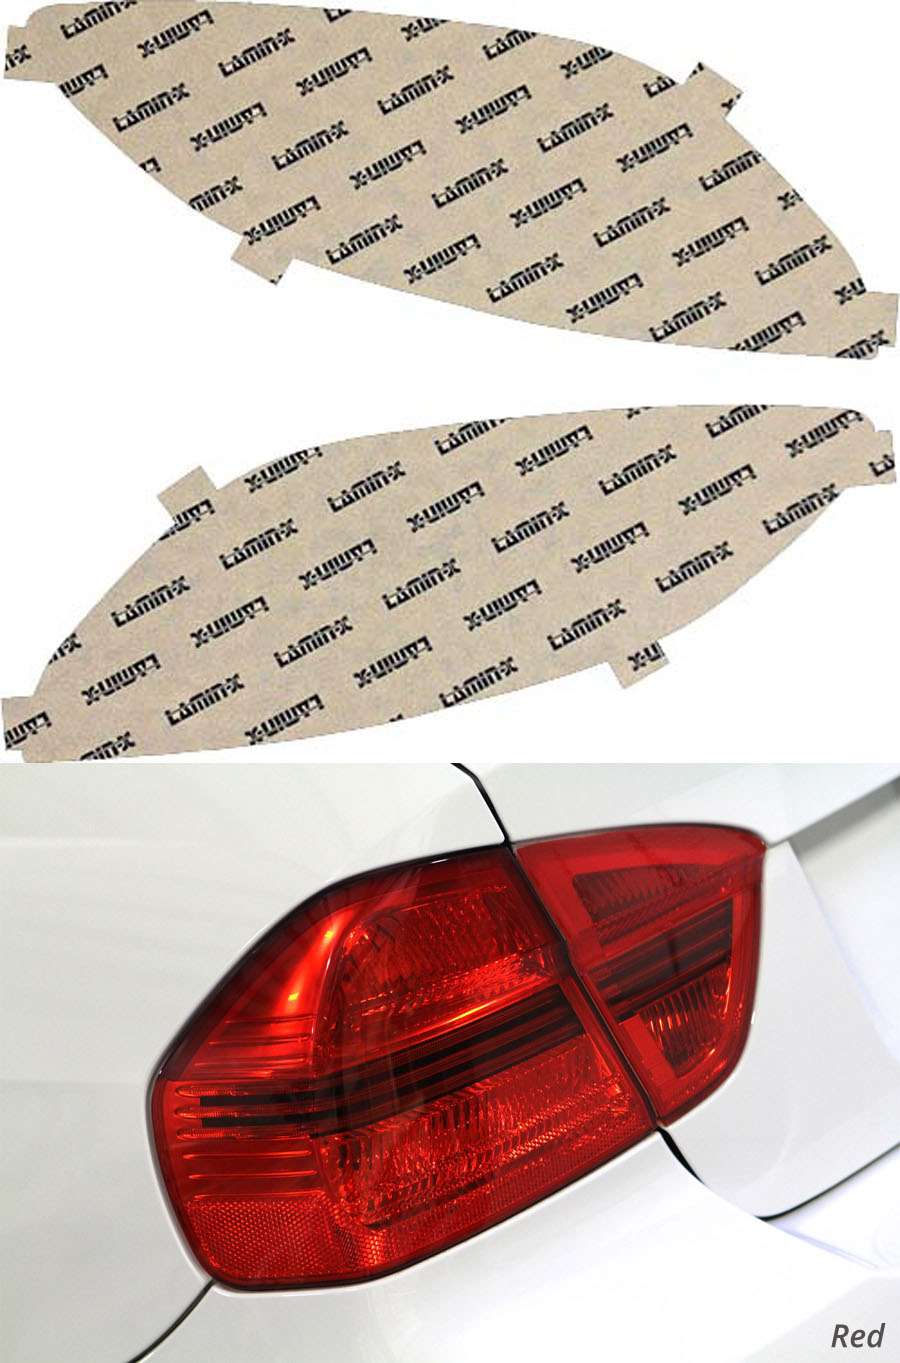 Mazda 2 11-15 Red Tail Light Covers Lamin-X M222R